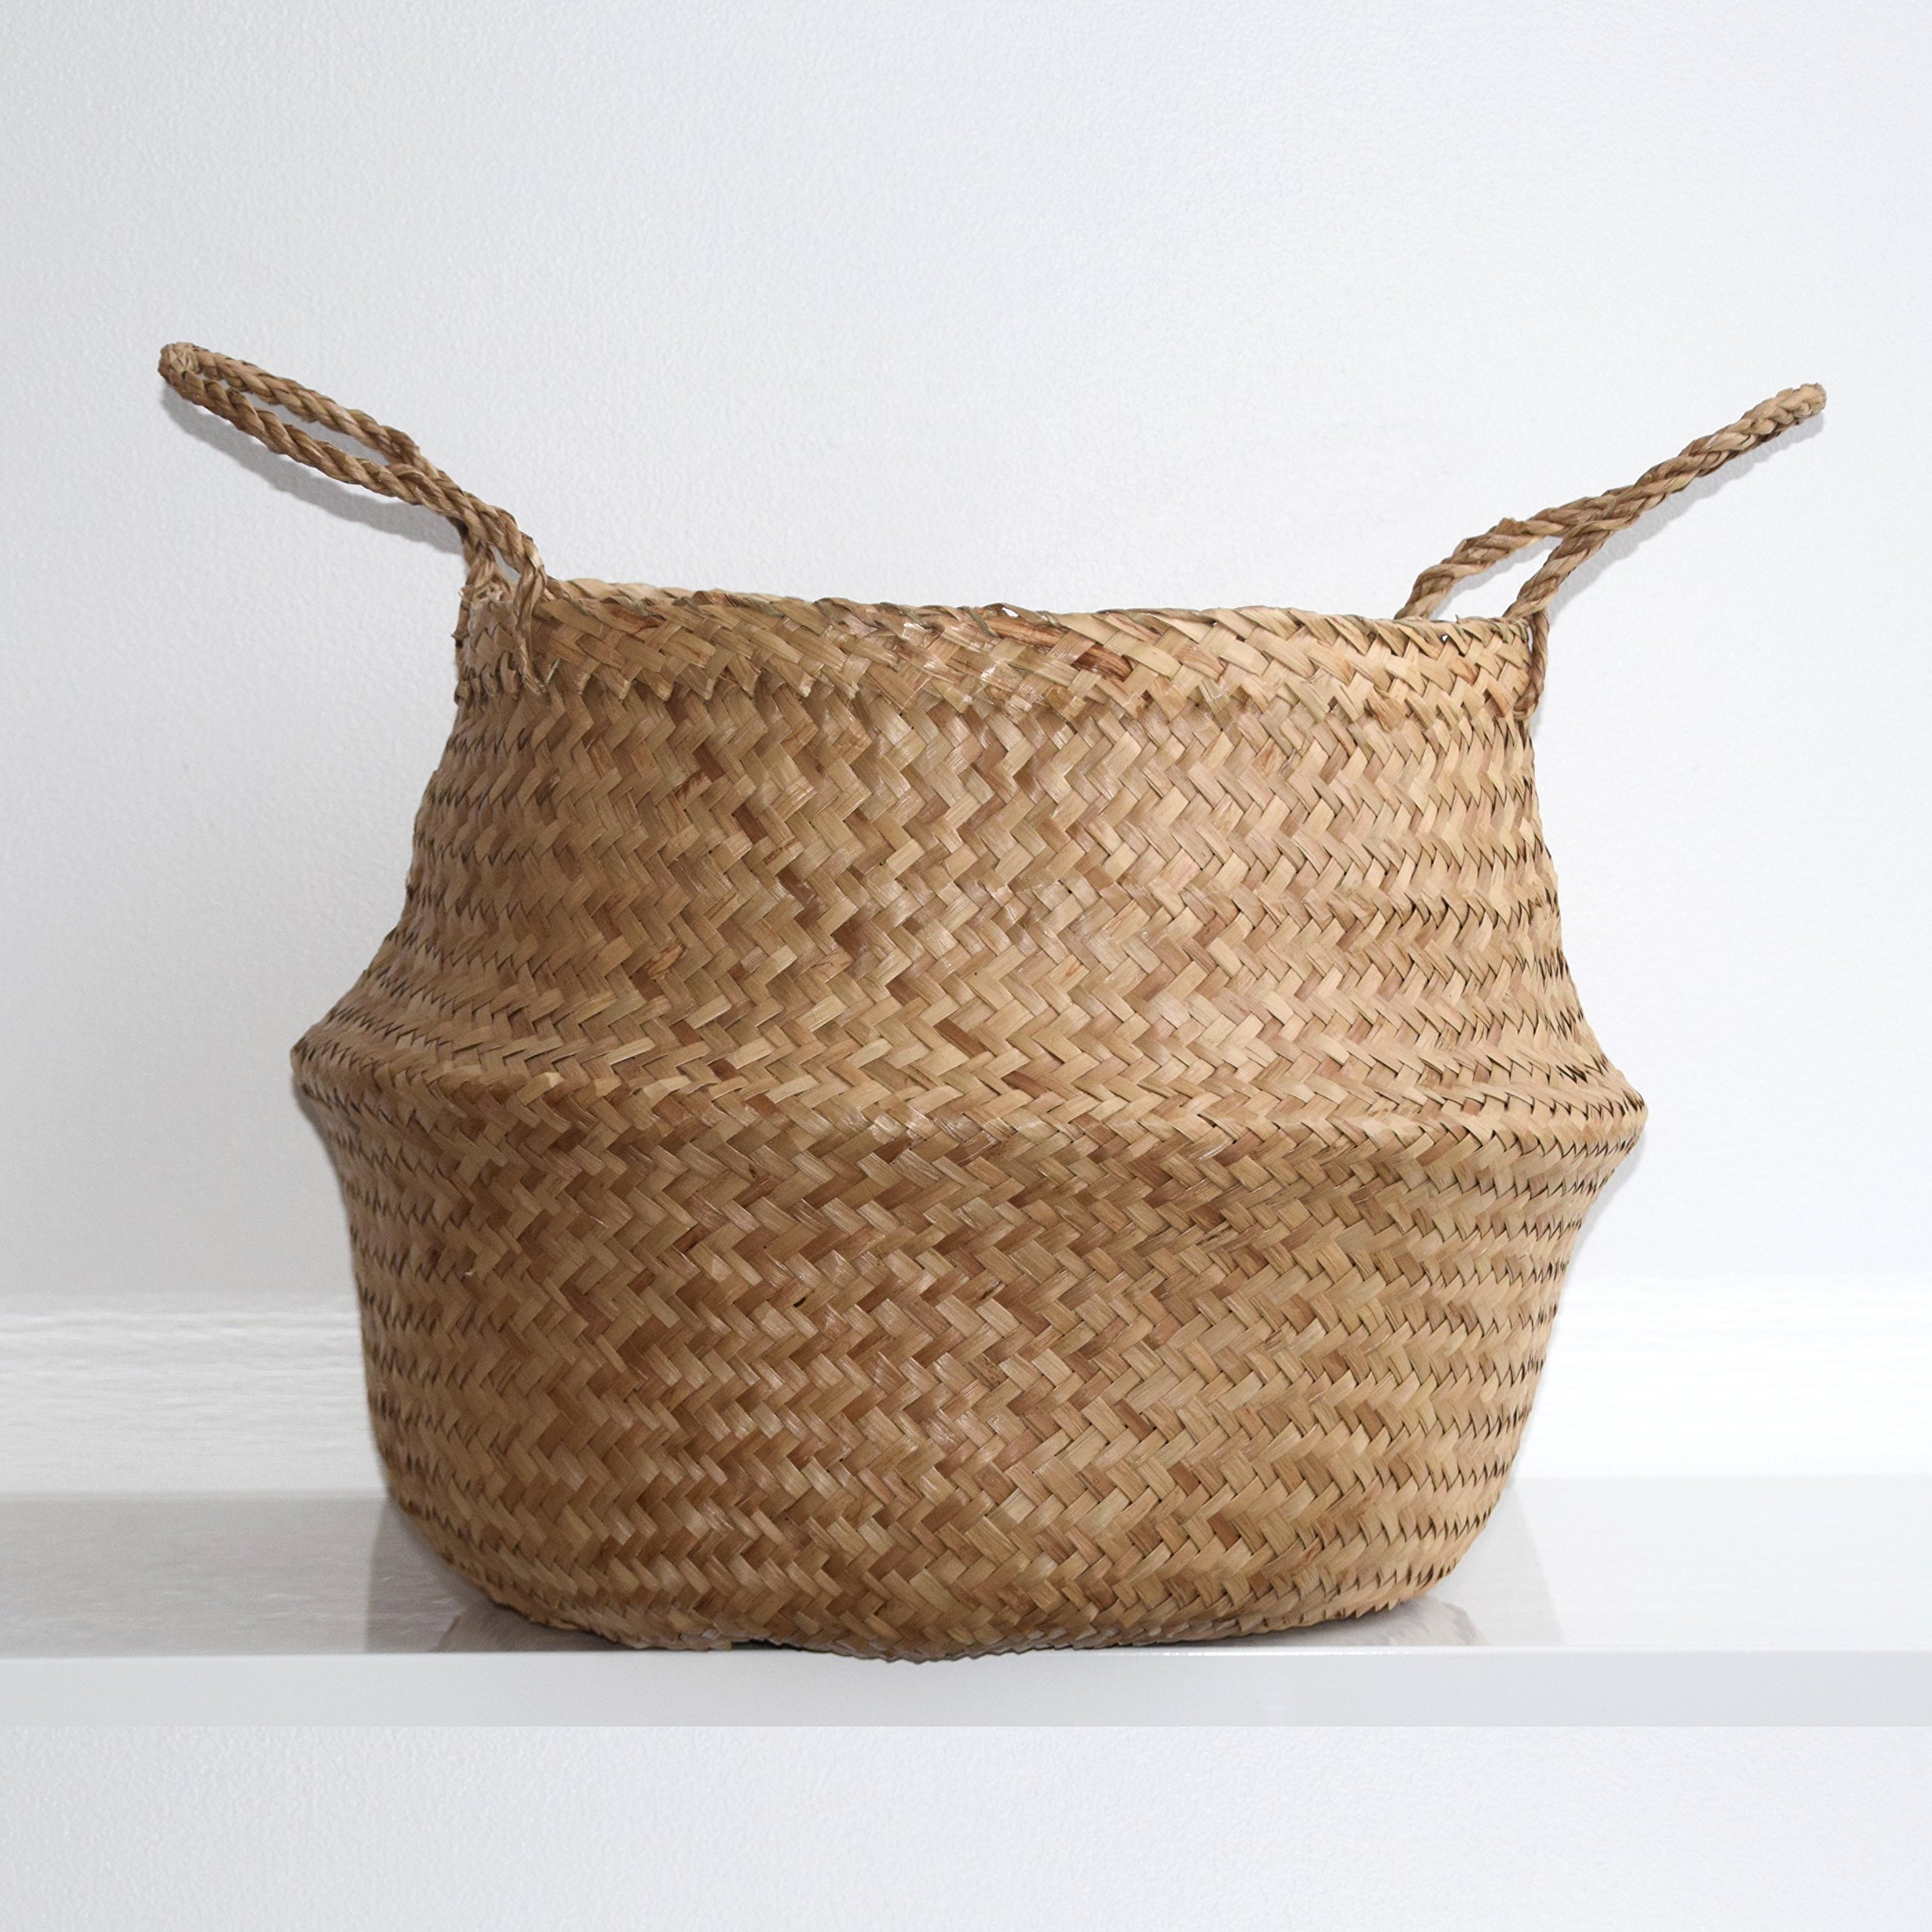 Seagrass Storage Baskets: DUFMOD Large Natural Woven Seagrass Tote Belly Basket For